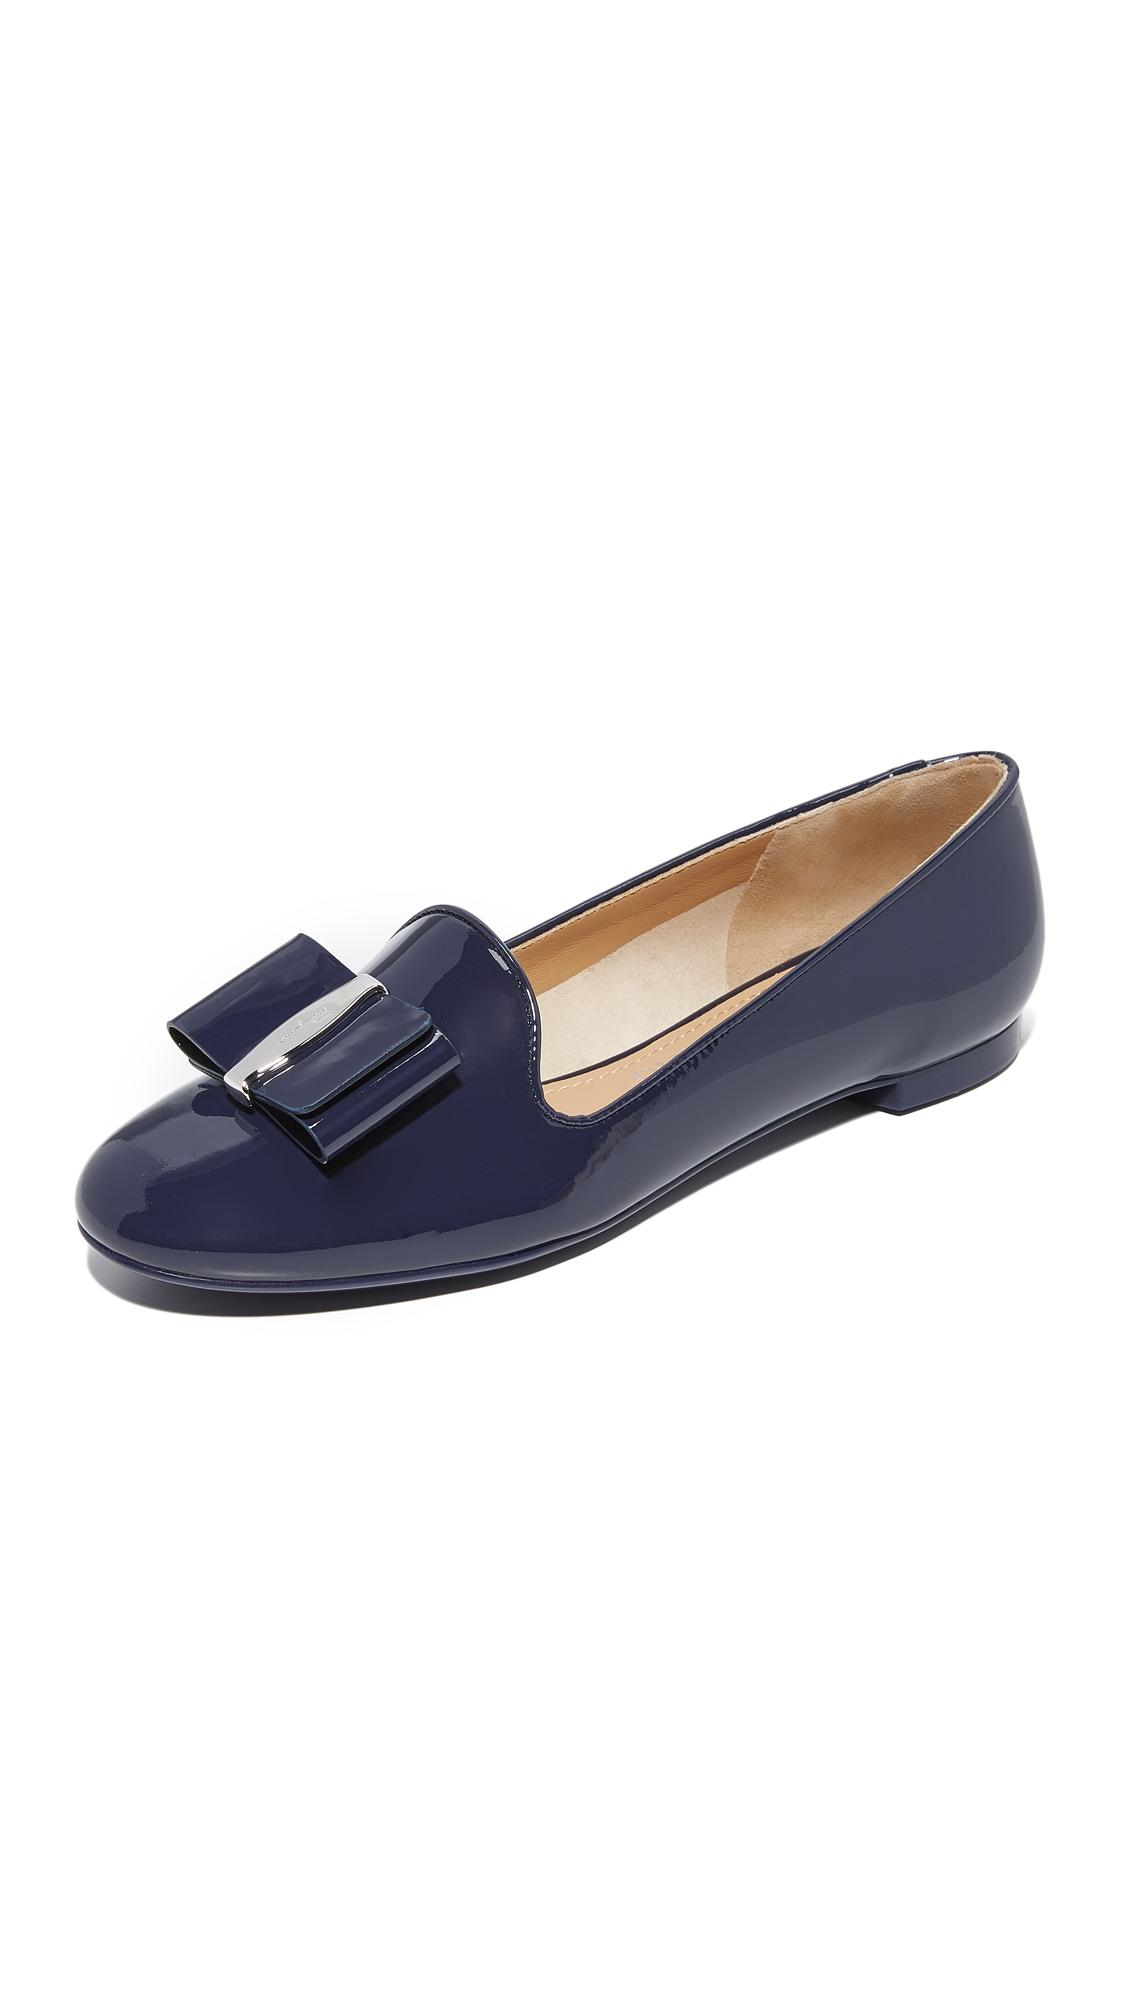 hot sale online Salvatore Ferragamo Elisabel Patent Flats classic cheap online buy cheap for cheap fast delivery supply for sale AMETOf8cUu